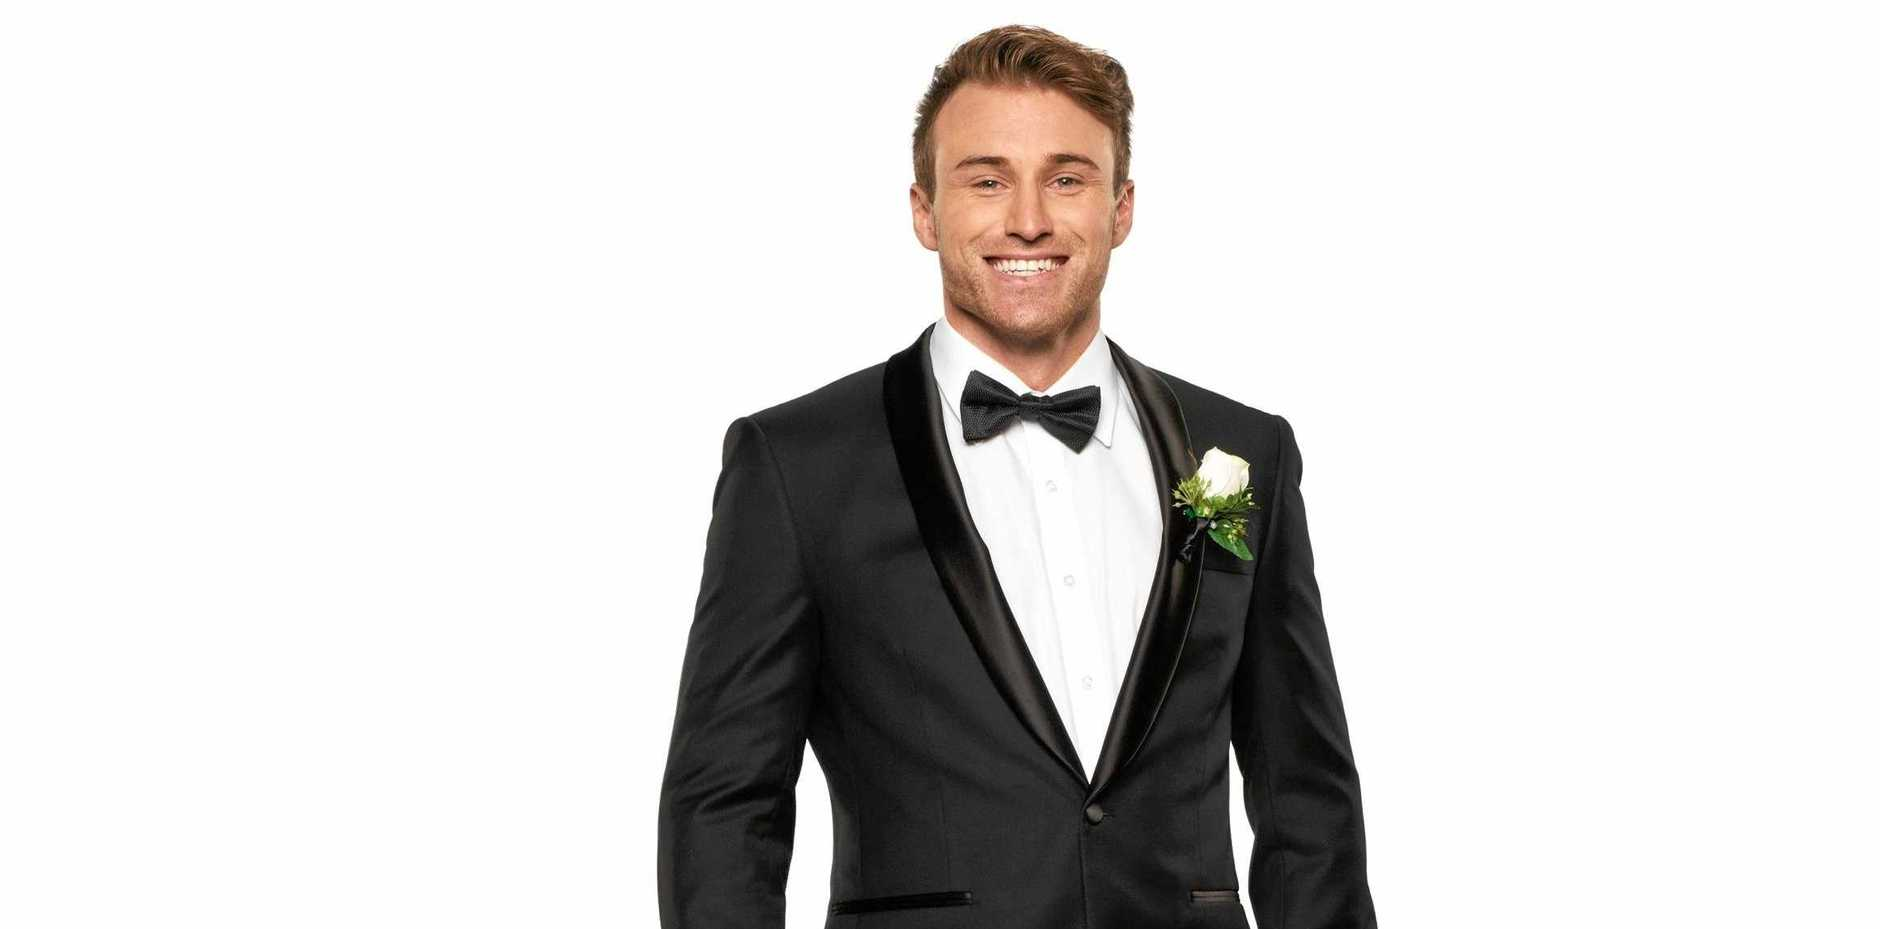 SINGLES: Billy Vincent from MAFS will be the special guest at the first speed dating niht in Ballina.